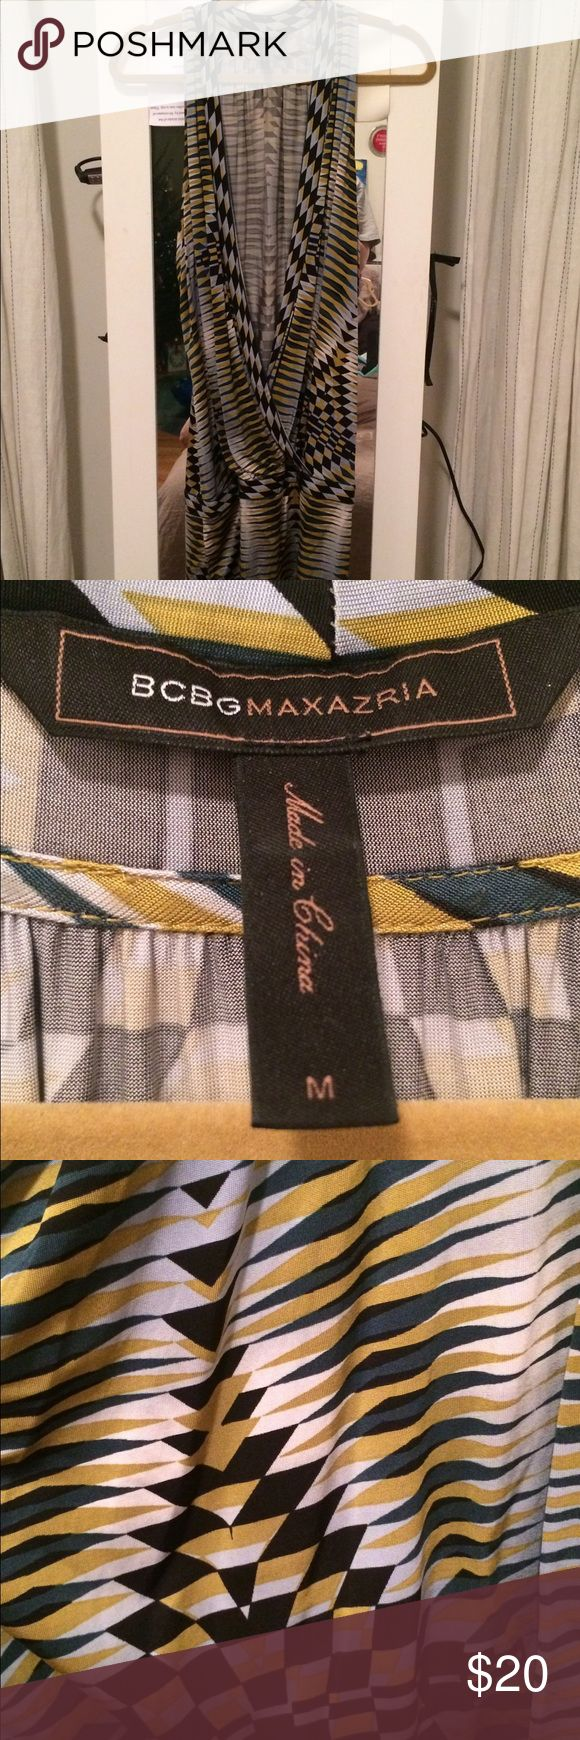 BCBG Max Azria going out top Low cut tank top with a long band on the bottom. BCBGMaxAzria Tops Tunics